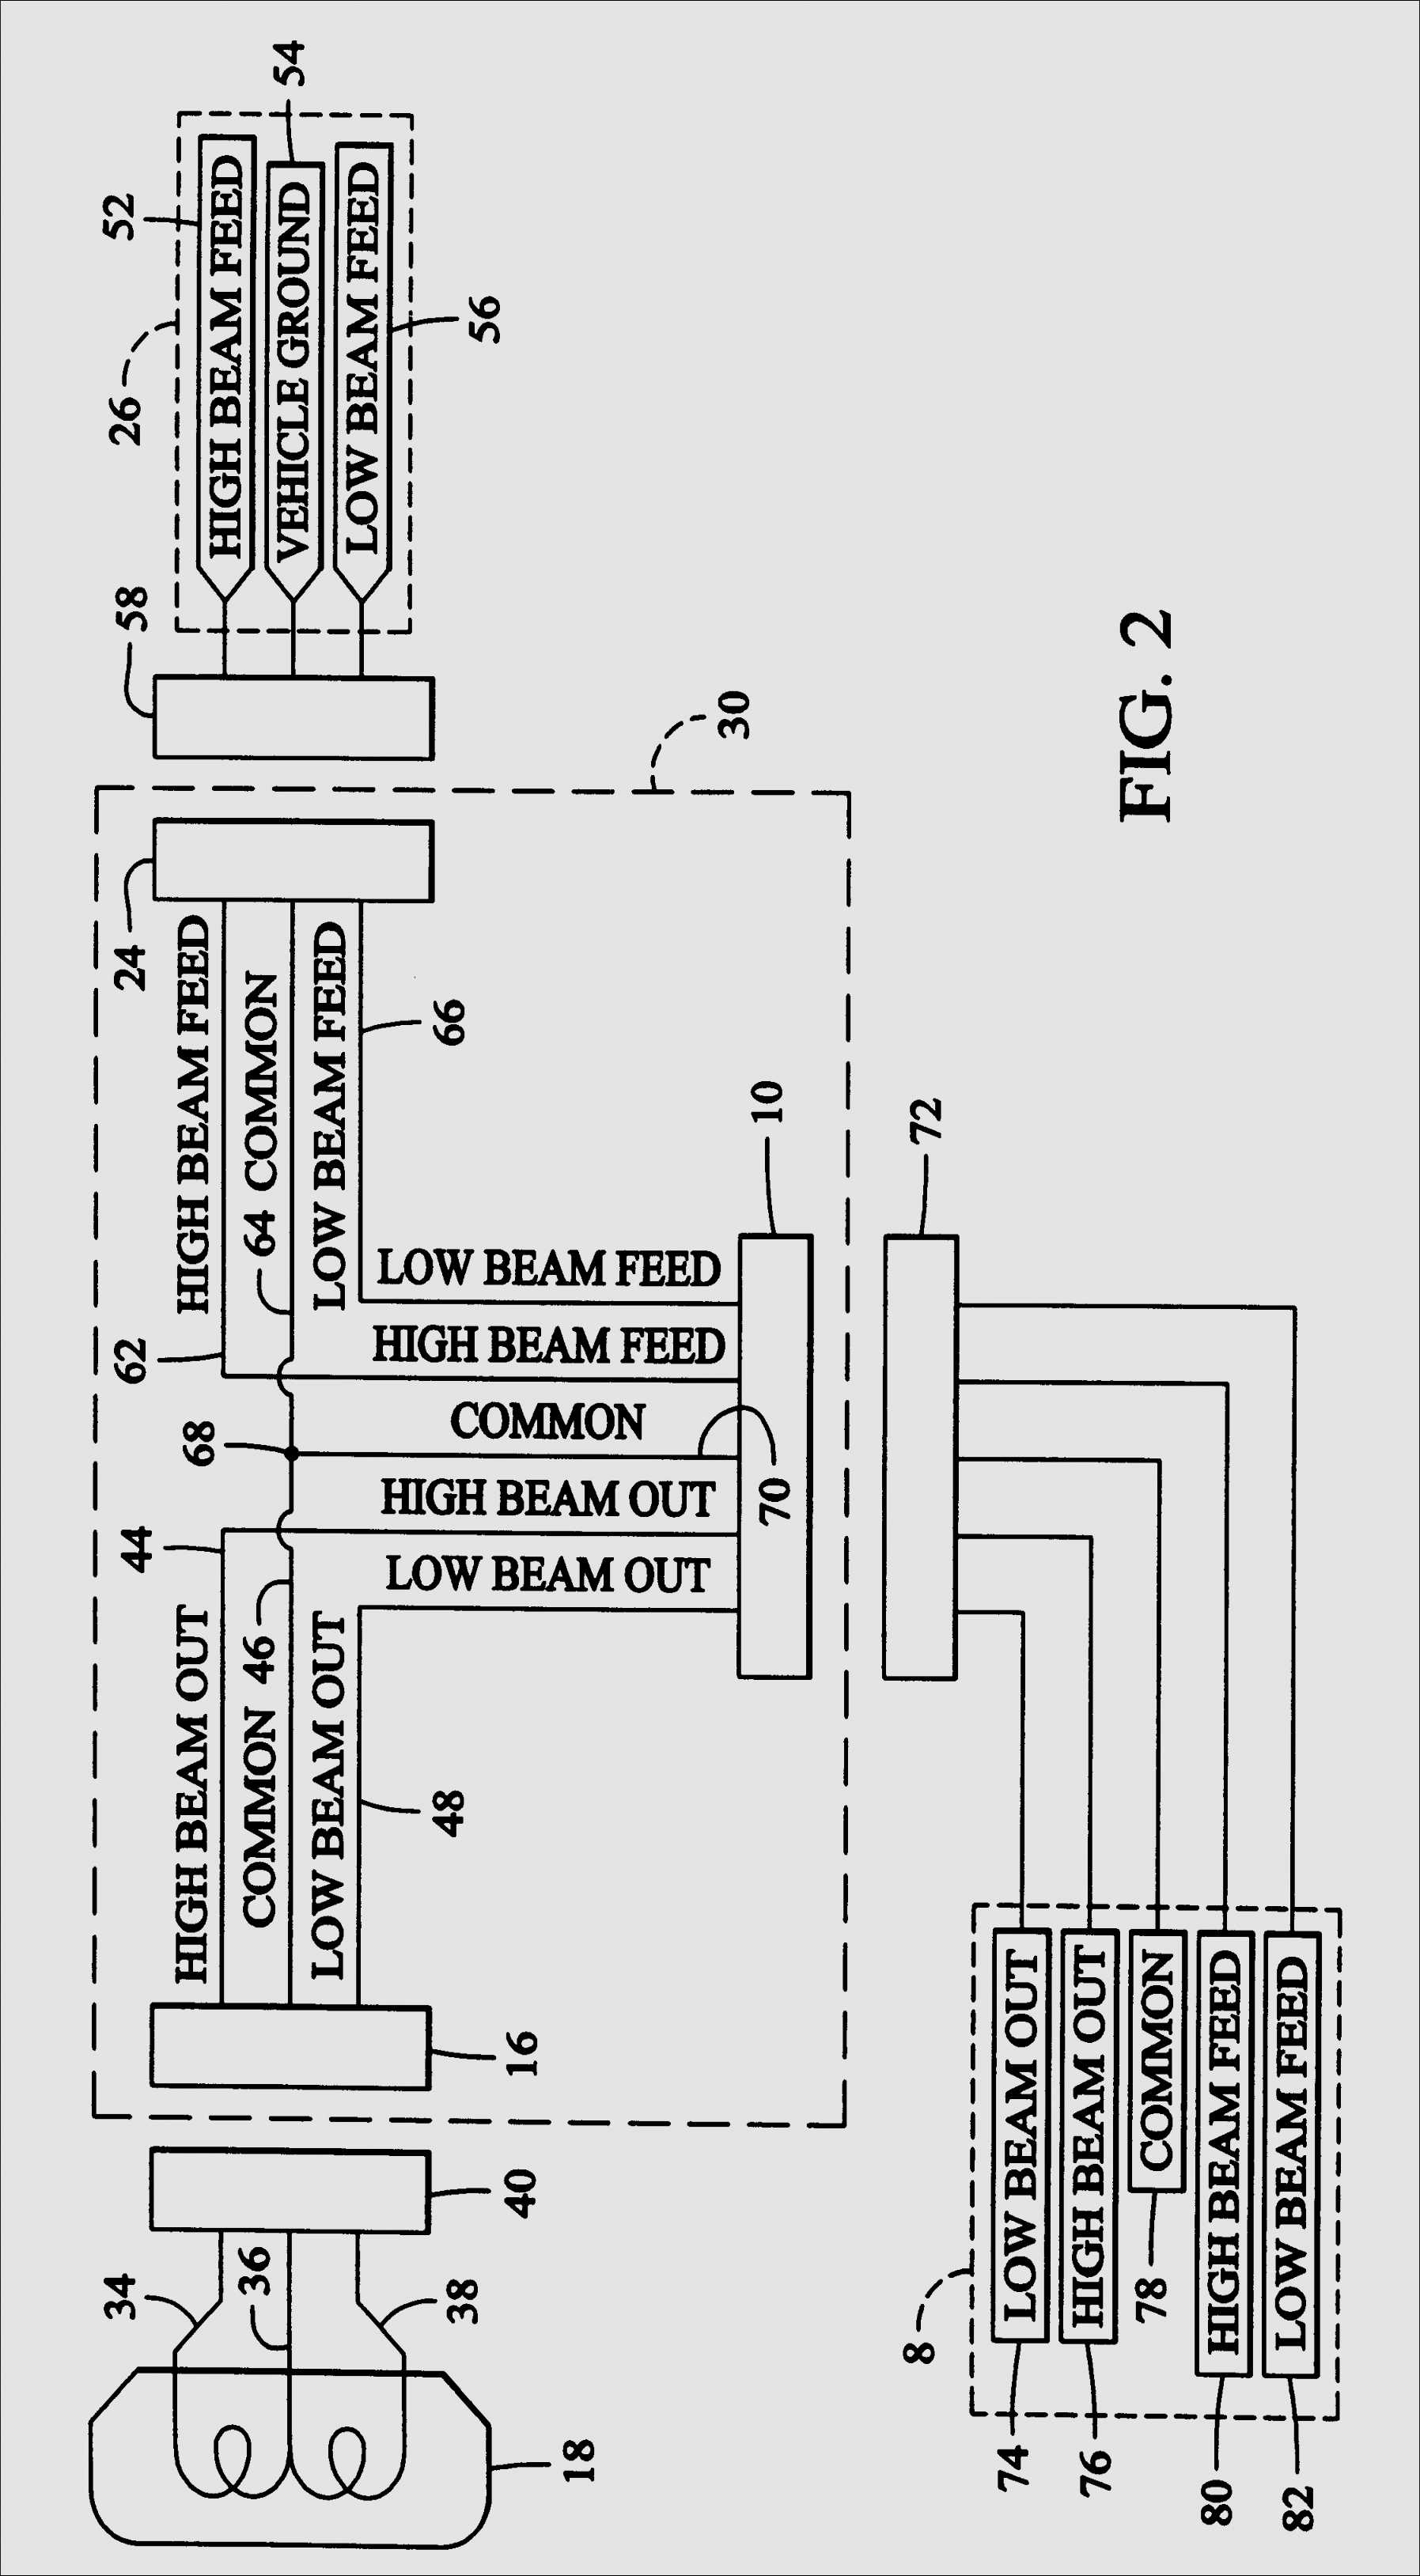 Meyers Snow Plows Wiring Diagram